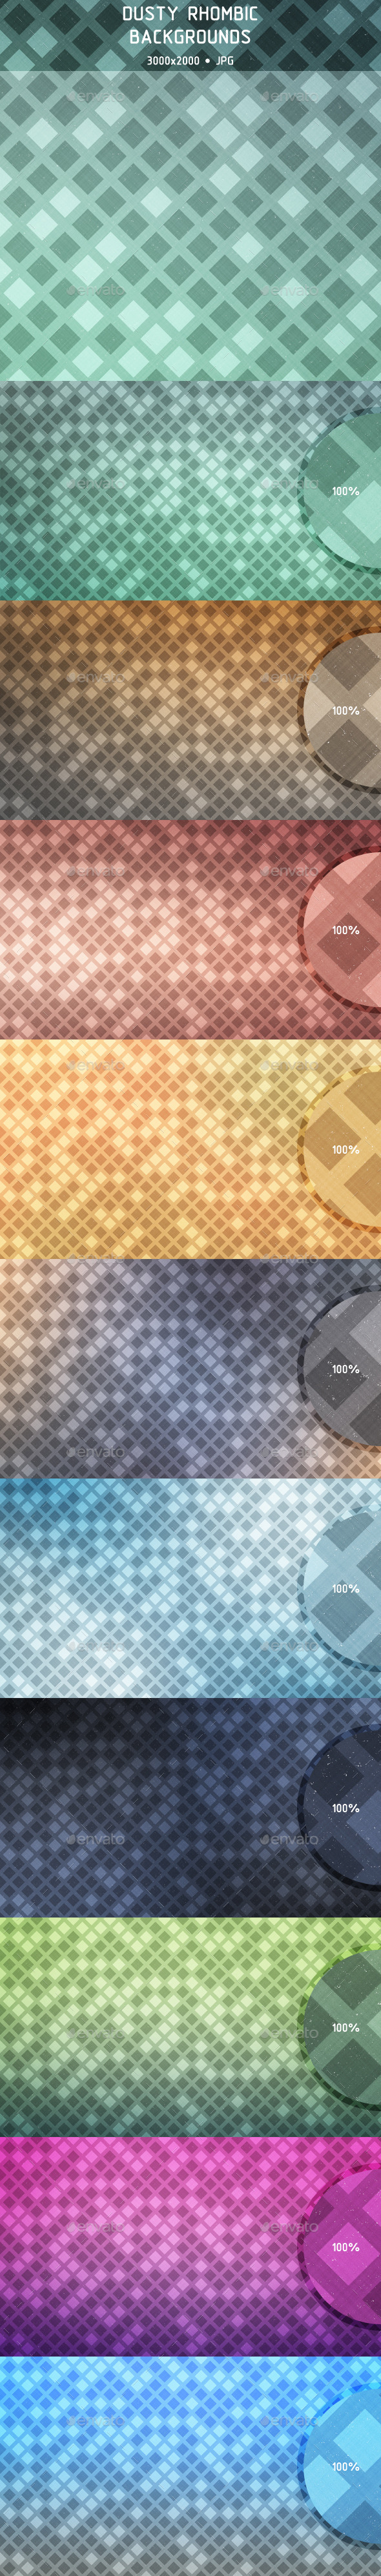 Dusty Rhombic Backgrounds - Backgrounds Graphics